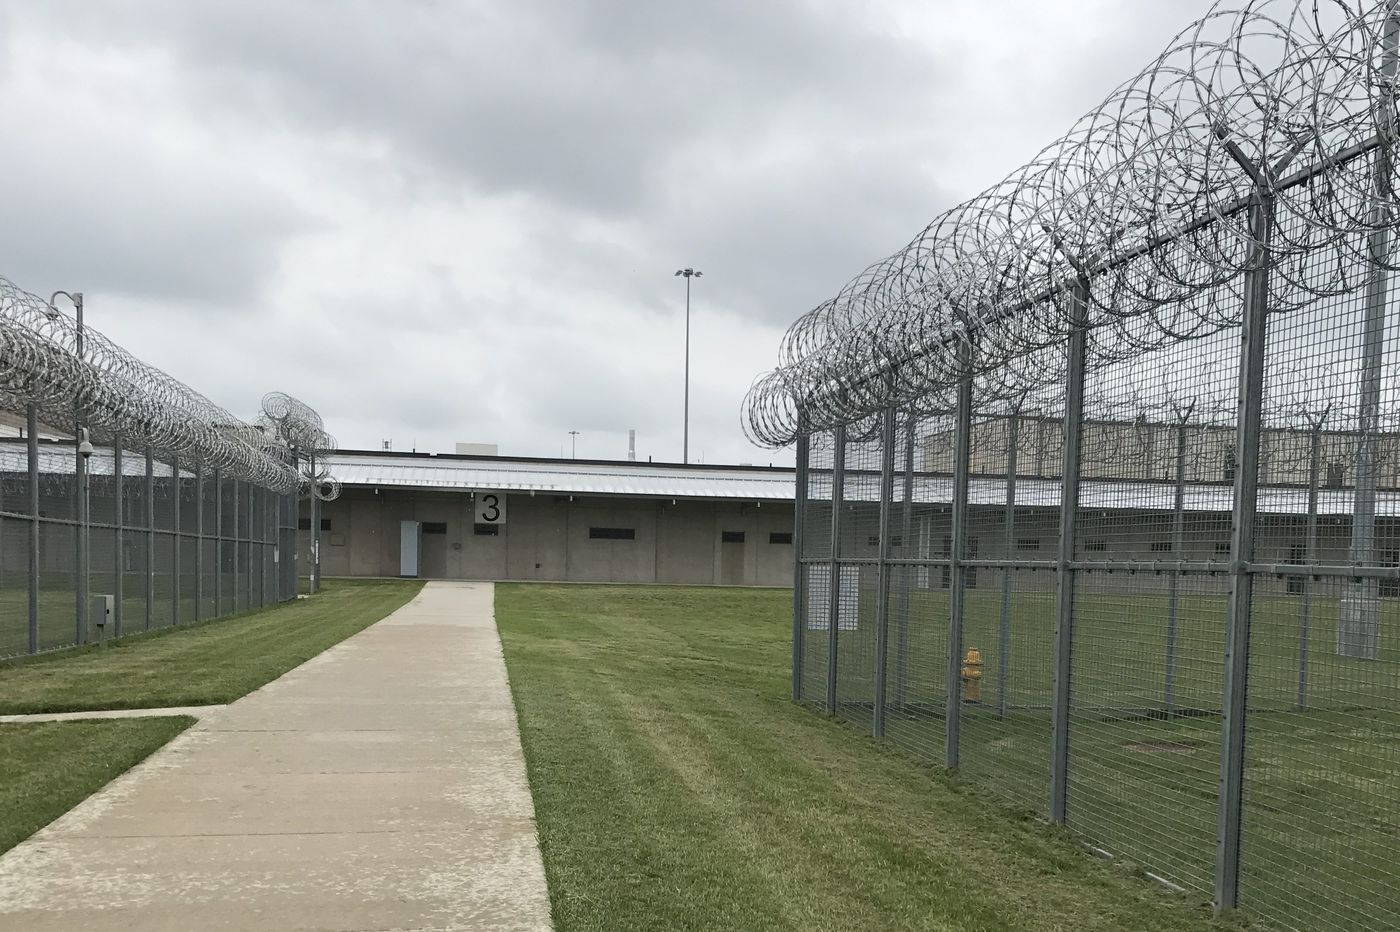 Pa. prisons spend $15M after guards were sickened by K2. But what if it was just in their heads?